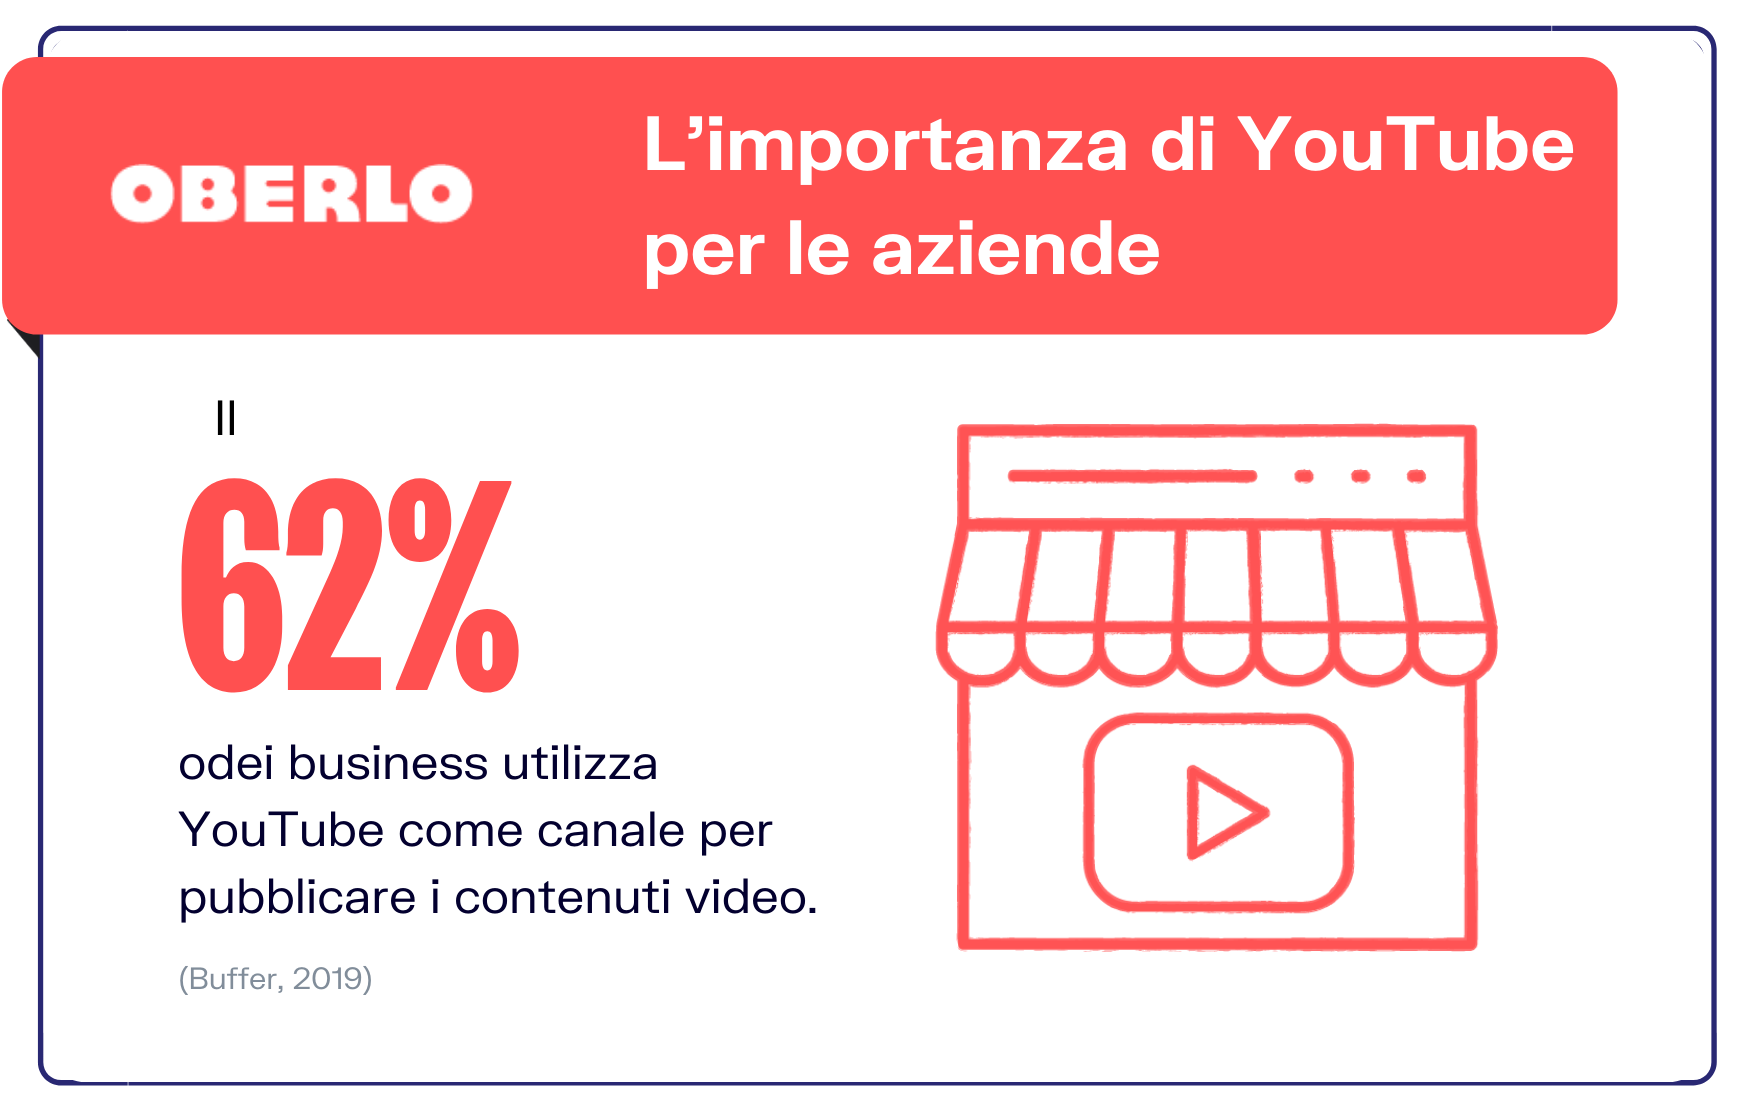 Statistiche YouTube business